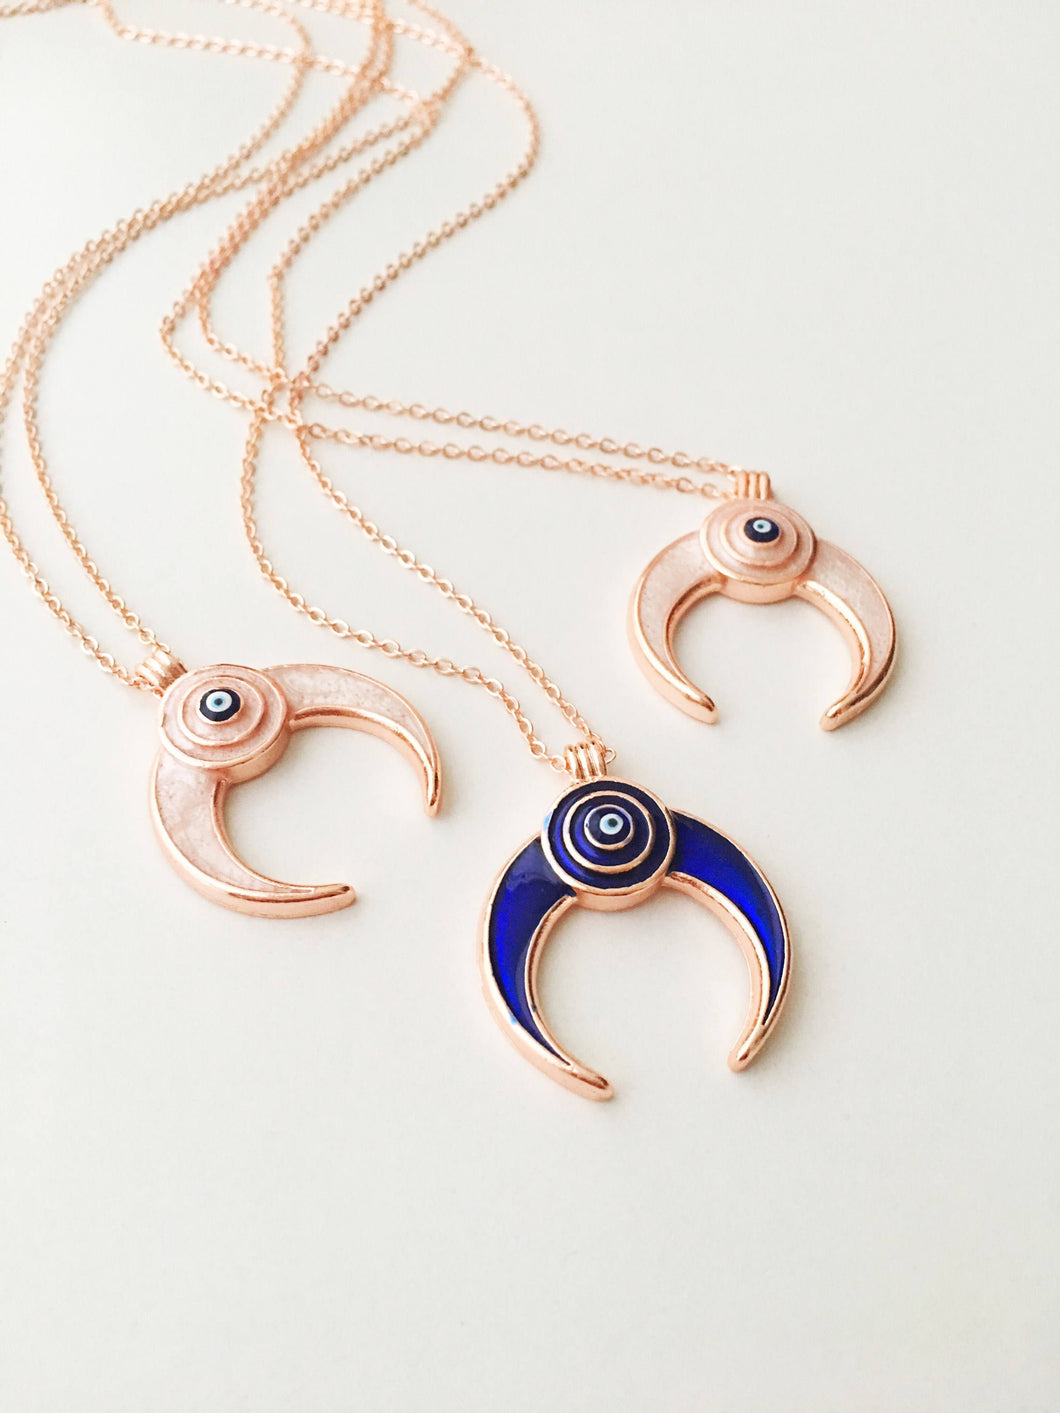 Double horn necklace, evil eye necklace, crescent moon necklace, evil eye horn necklace - Evileyefavor